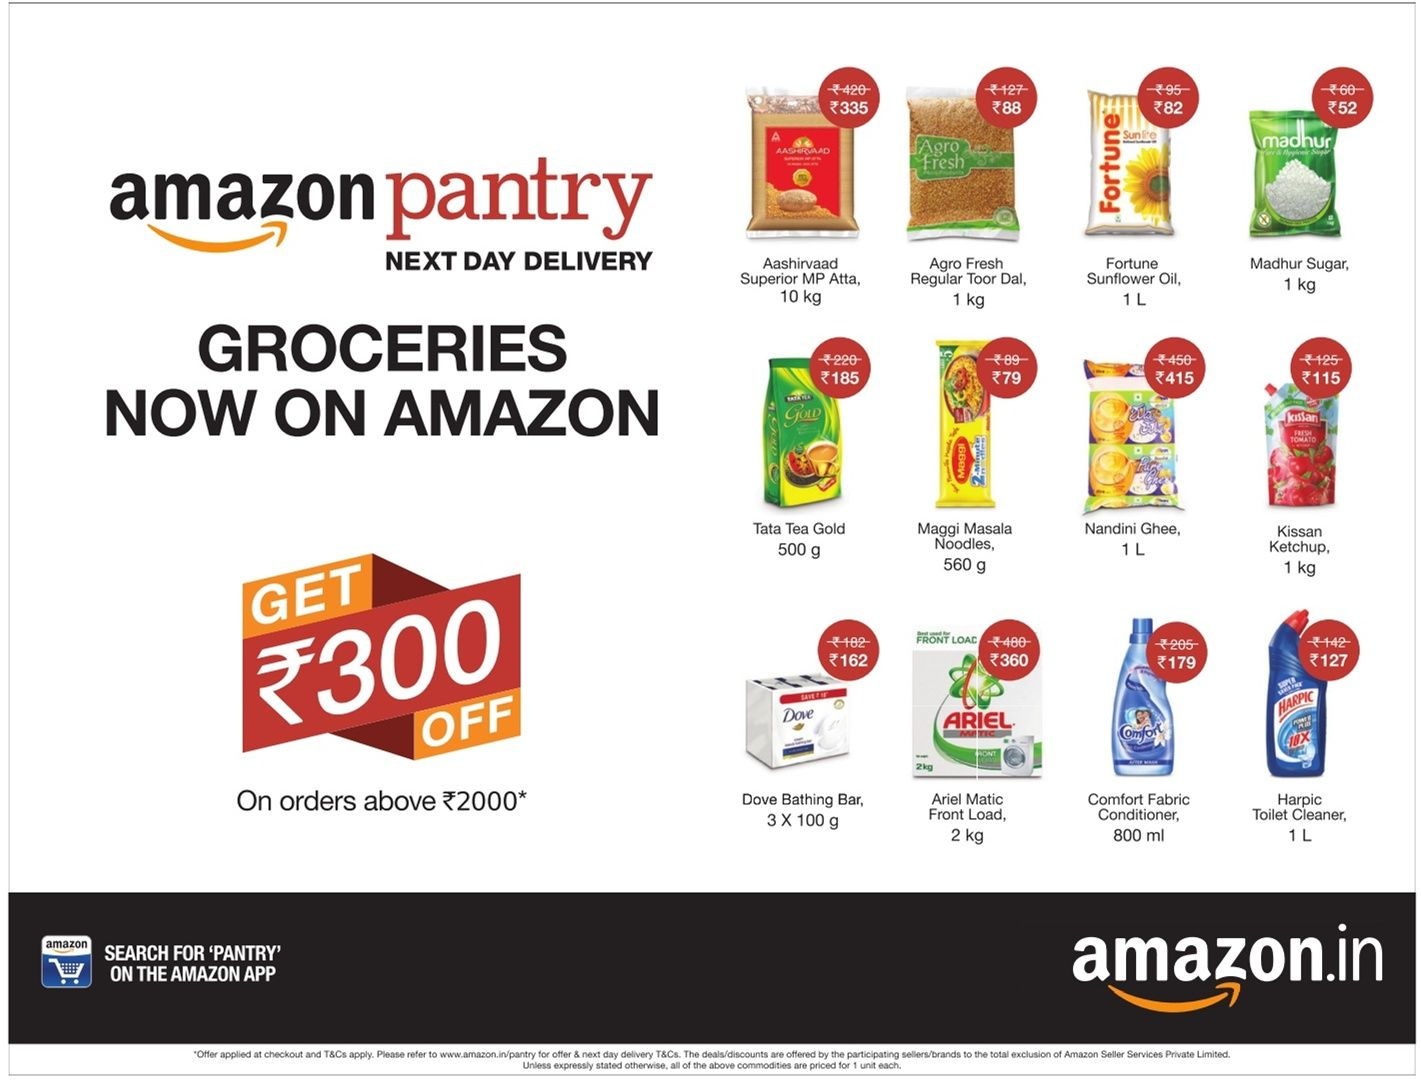 Amazon In Pantry Groceries Ad Times Of India Bangalore Check Out Amazon Advertisement Collection At Https Www Advertg Grocery Ads Grocery Delivery Groceries